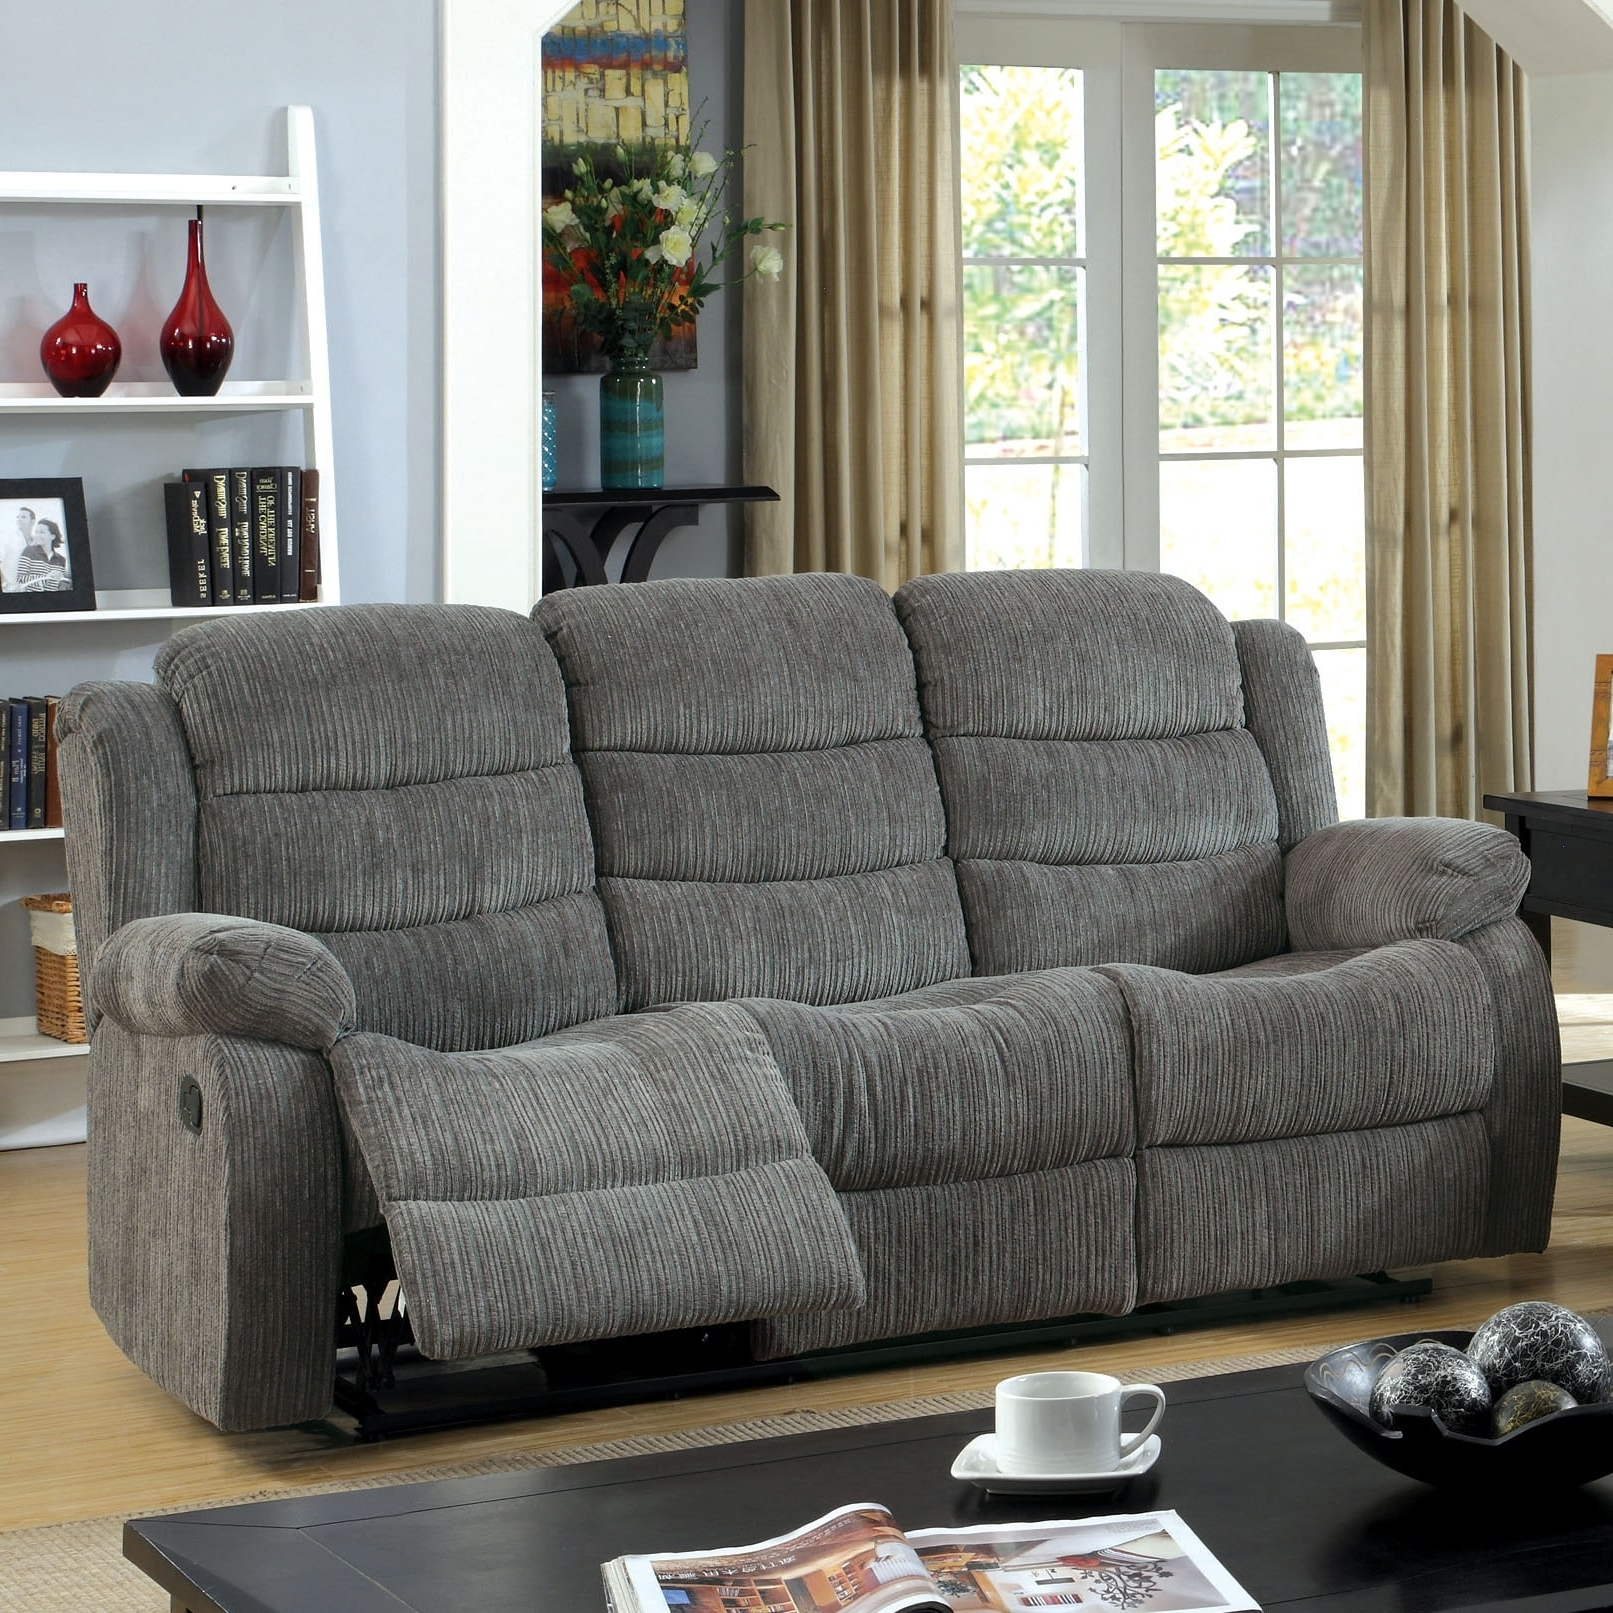 Well Known American Furniture Warehouse Greensboro Nc Fresh Fresh Sectional Intended For Sectional Sofas In Greensboro Nc (View 14 of 15)